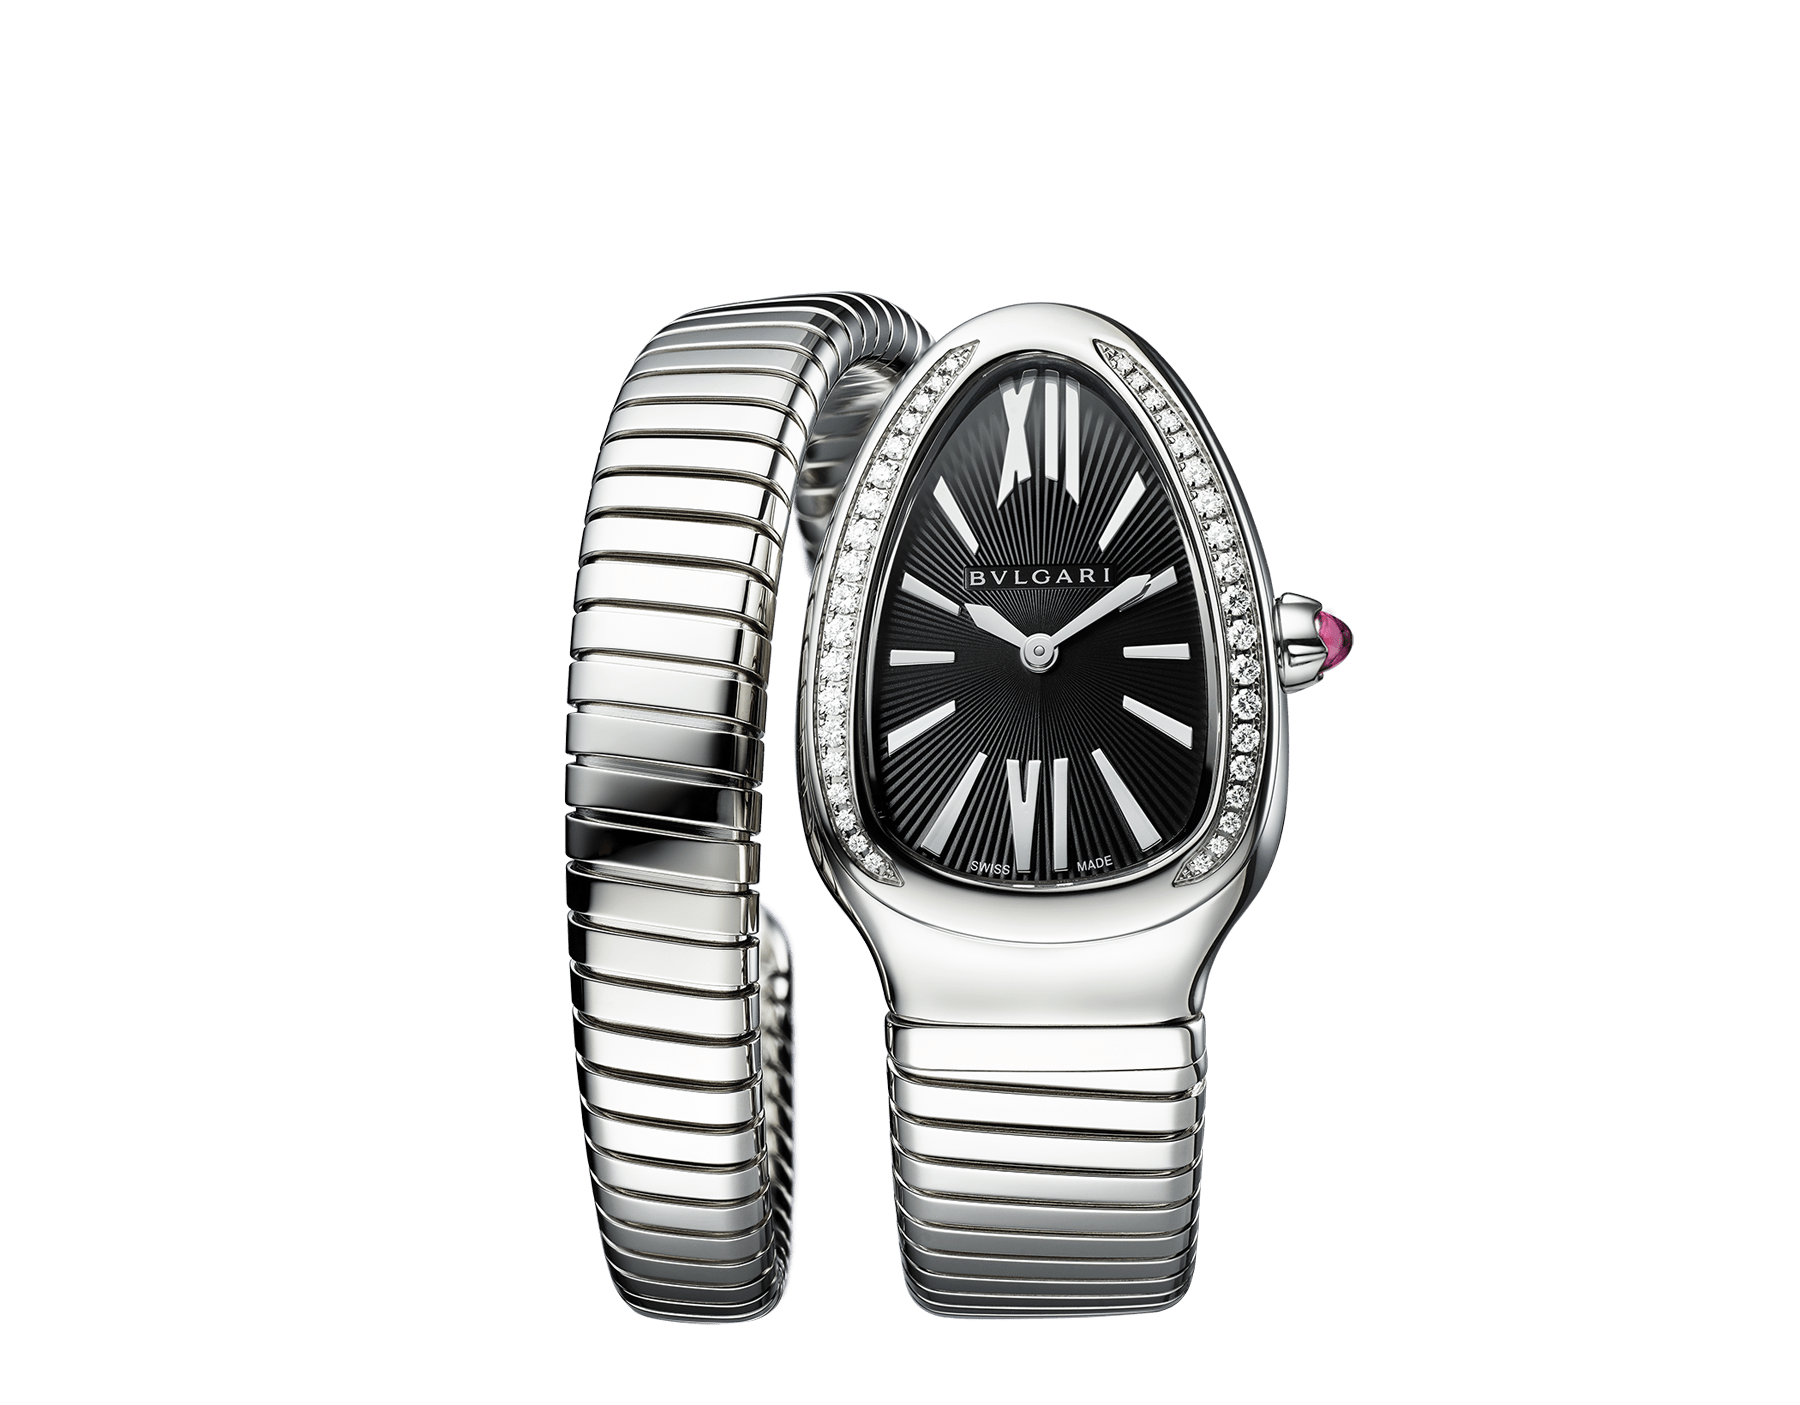 Serpenti Tubogas single spiral watch with stainless steel case and bracelet, bezel set with brilliant-cut diamonds and black dial with guilloché soleil treatment. Water-resistant up to 30 metres. Large size 103434 image 1